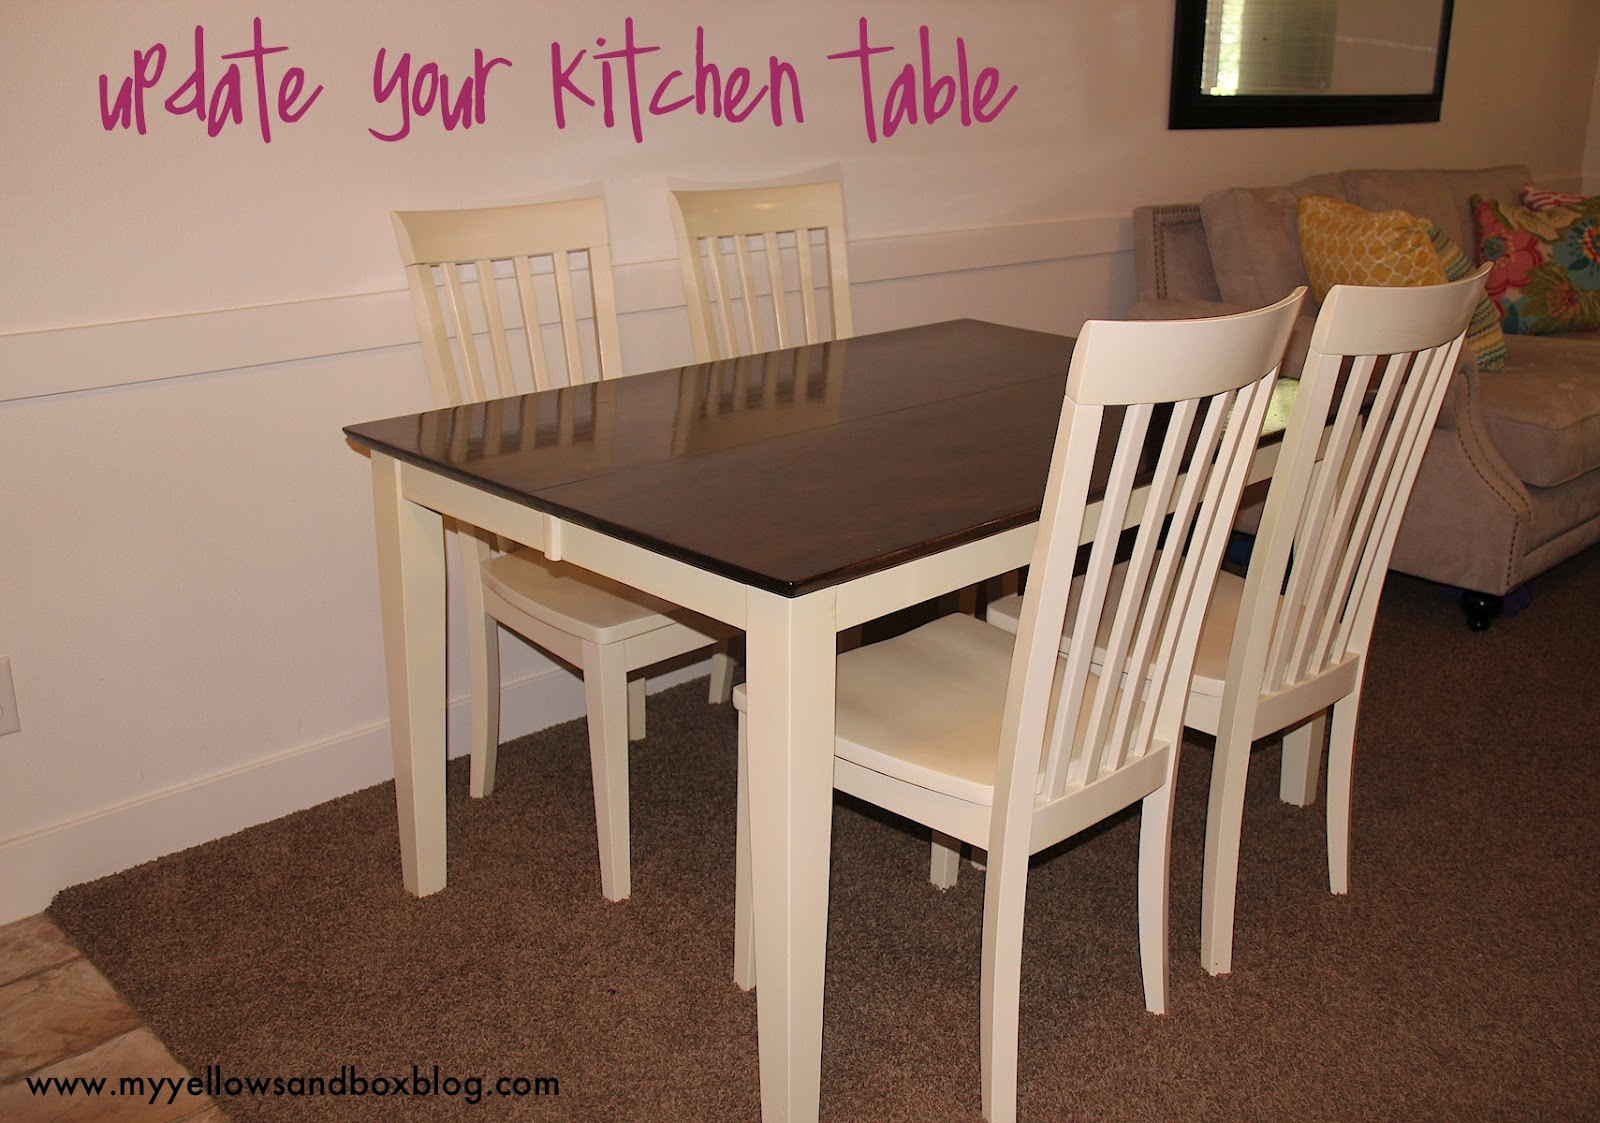 How to stain and paint your kitchen table twist me pretty how to stain and paint your kitchen table august 21 2012 watchthetrailerfo